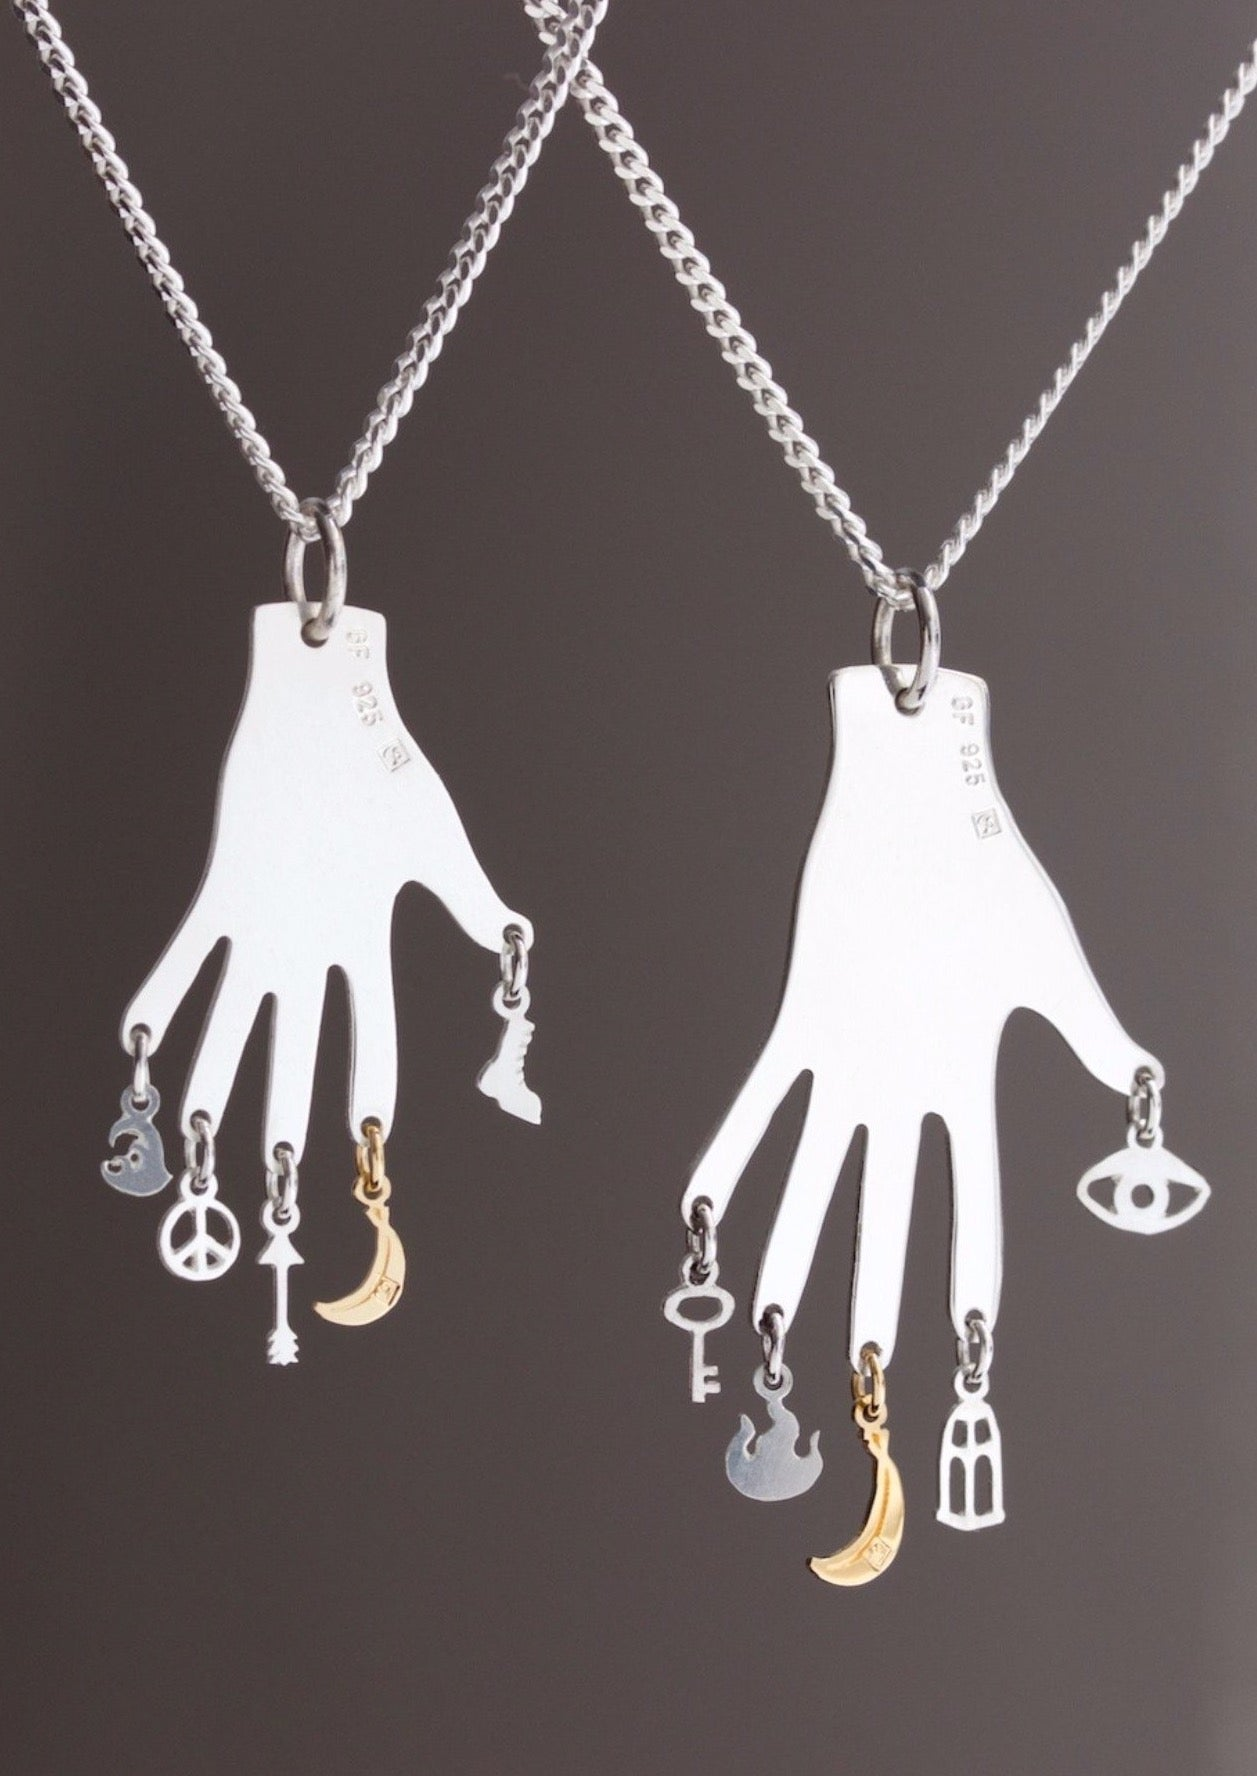 Philosophers Hand / Talisman / Pendant with charms